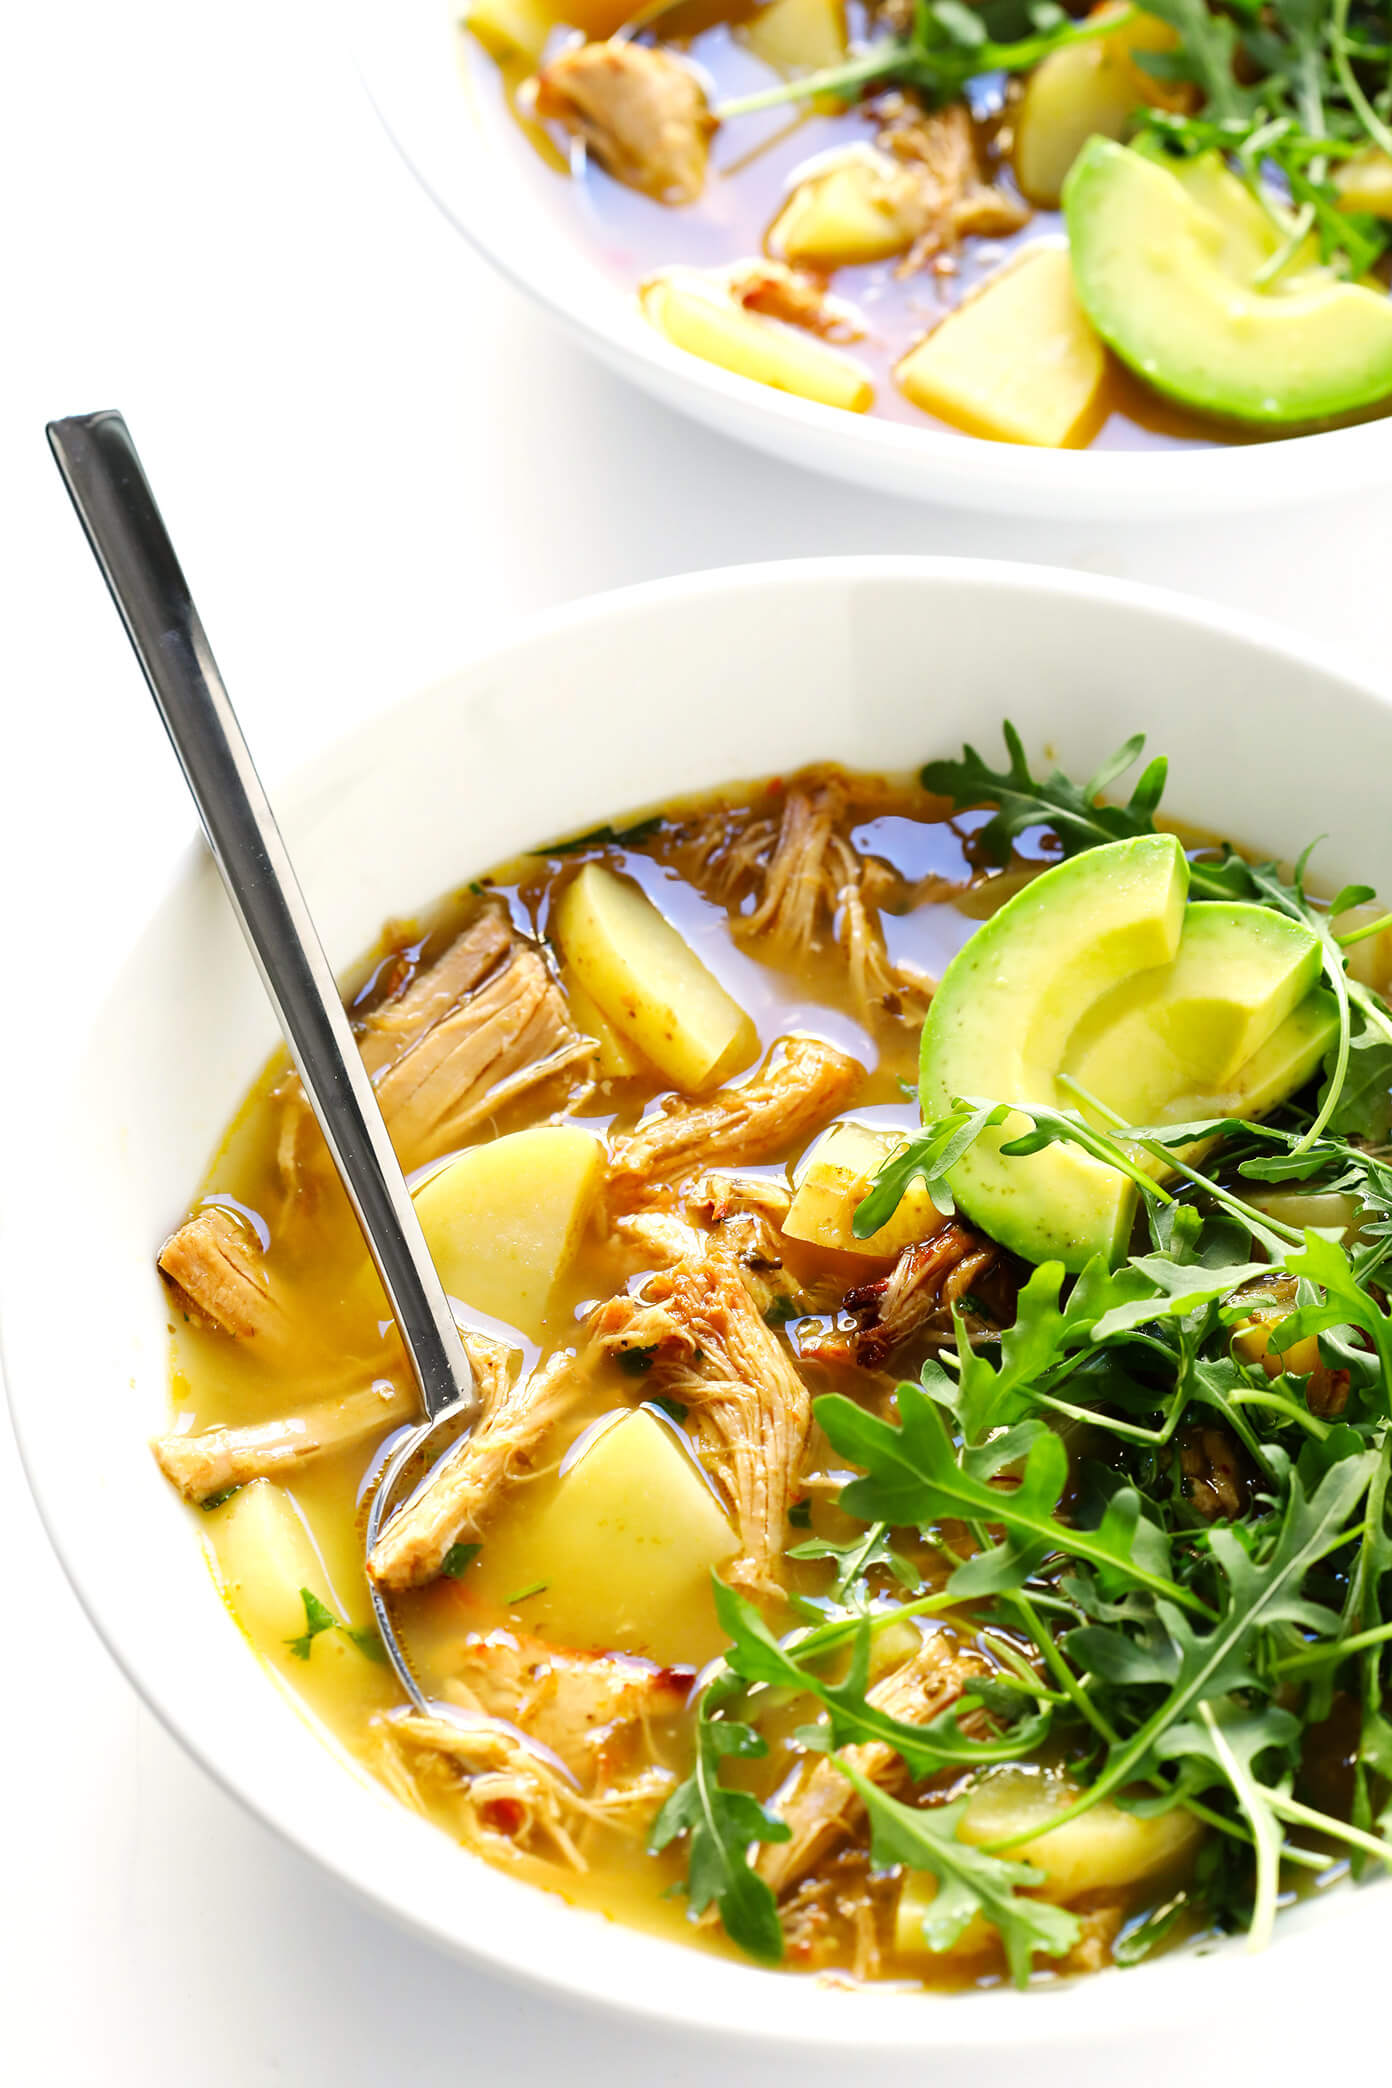 This 5-Ingredient Carnitas Soup is super-easy to make with leftover pork (or chicken) carnitas, potatoes, and salsa verde. I highly recommend loading it up with lots of toppings too, such as arugula, avocado, cilantro and jalapeño peppers. It's the perfect Mexican dinner that's easy to make on the stovetop, or in the Crock Pot (slow cooker) or Instant Pot (pressure cooker). And it's naturally gluten-free! | Gimme Some Oven